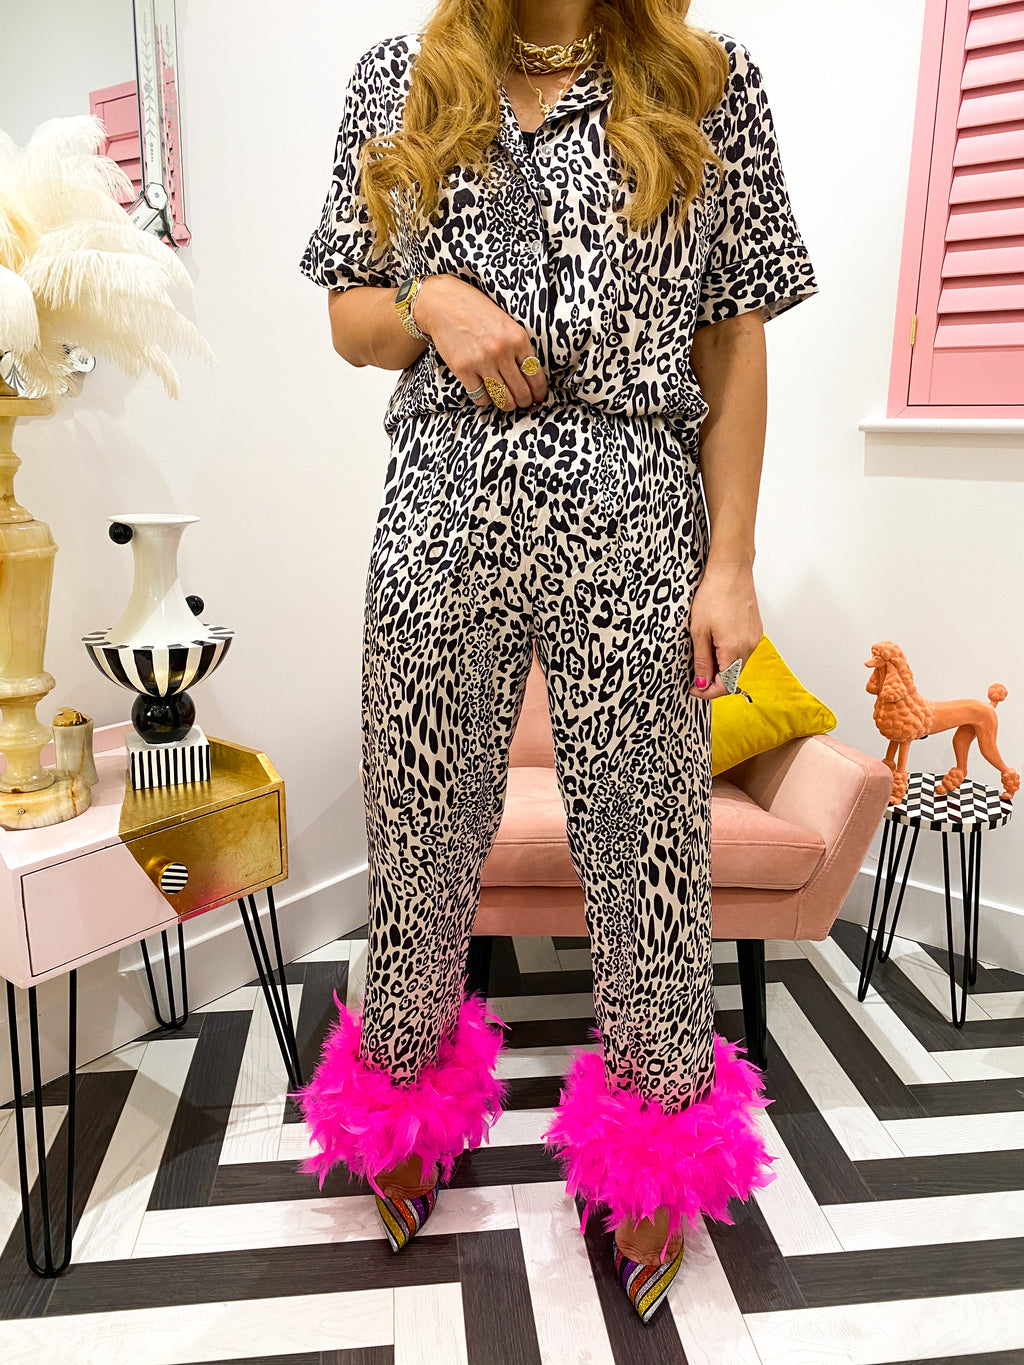 SHIPPING 3/5 DAYS: HOT PINK FEATHER DETAIL PYJAMA'S IN LEOPARD PRINT